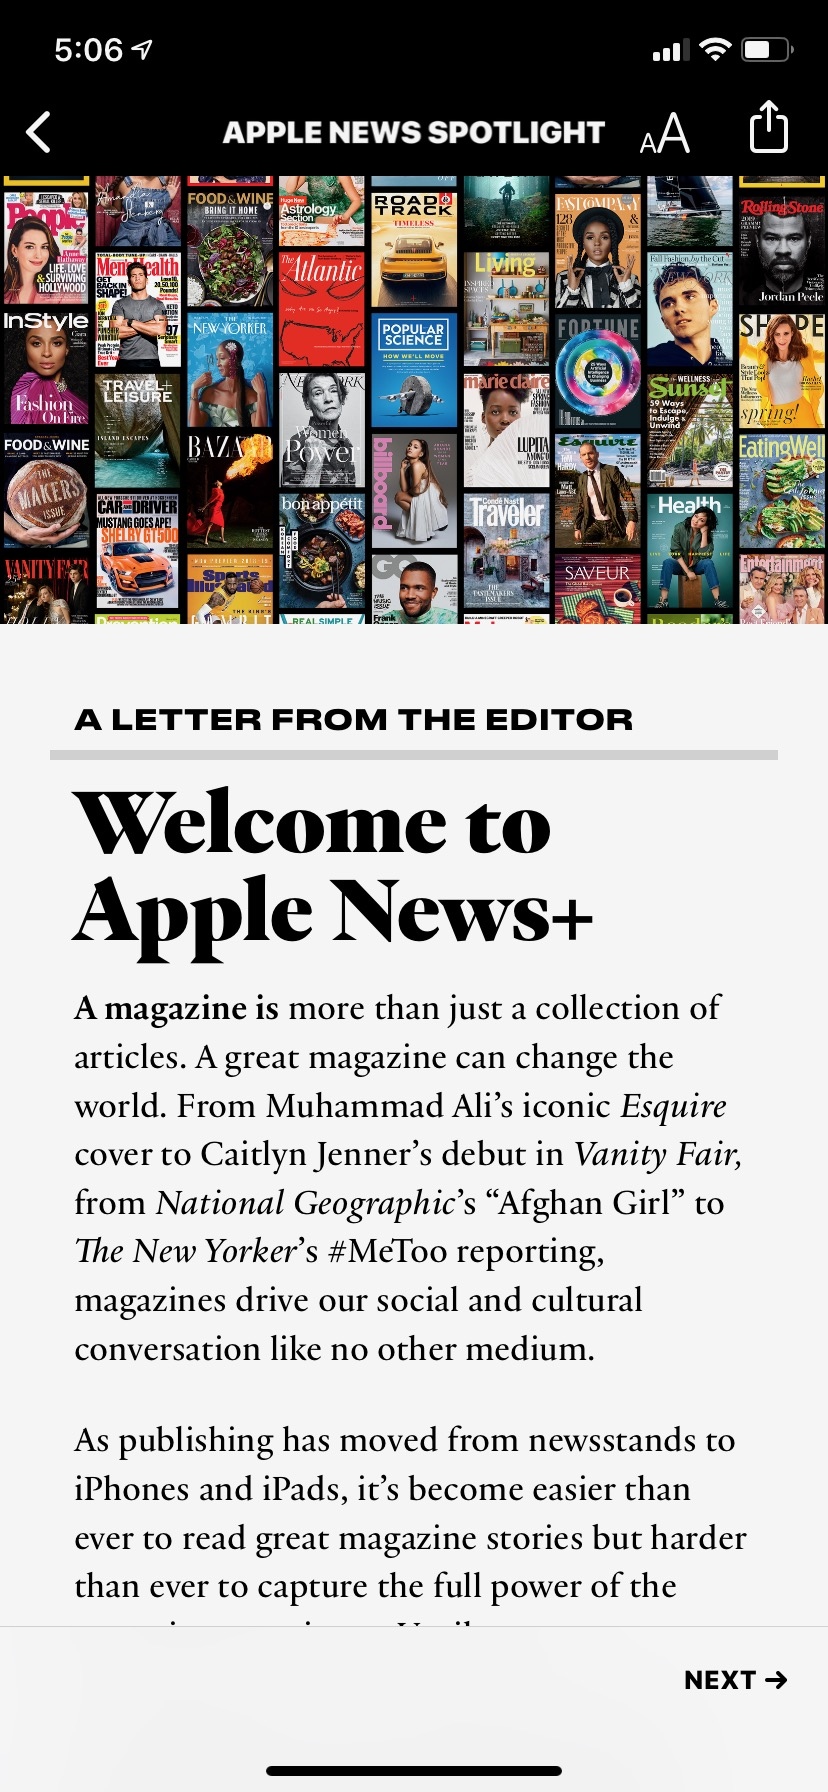 Apple News Plus is a fine way to read magazines, but a